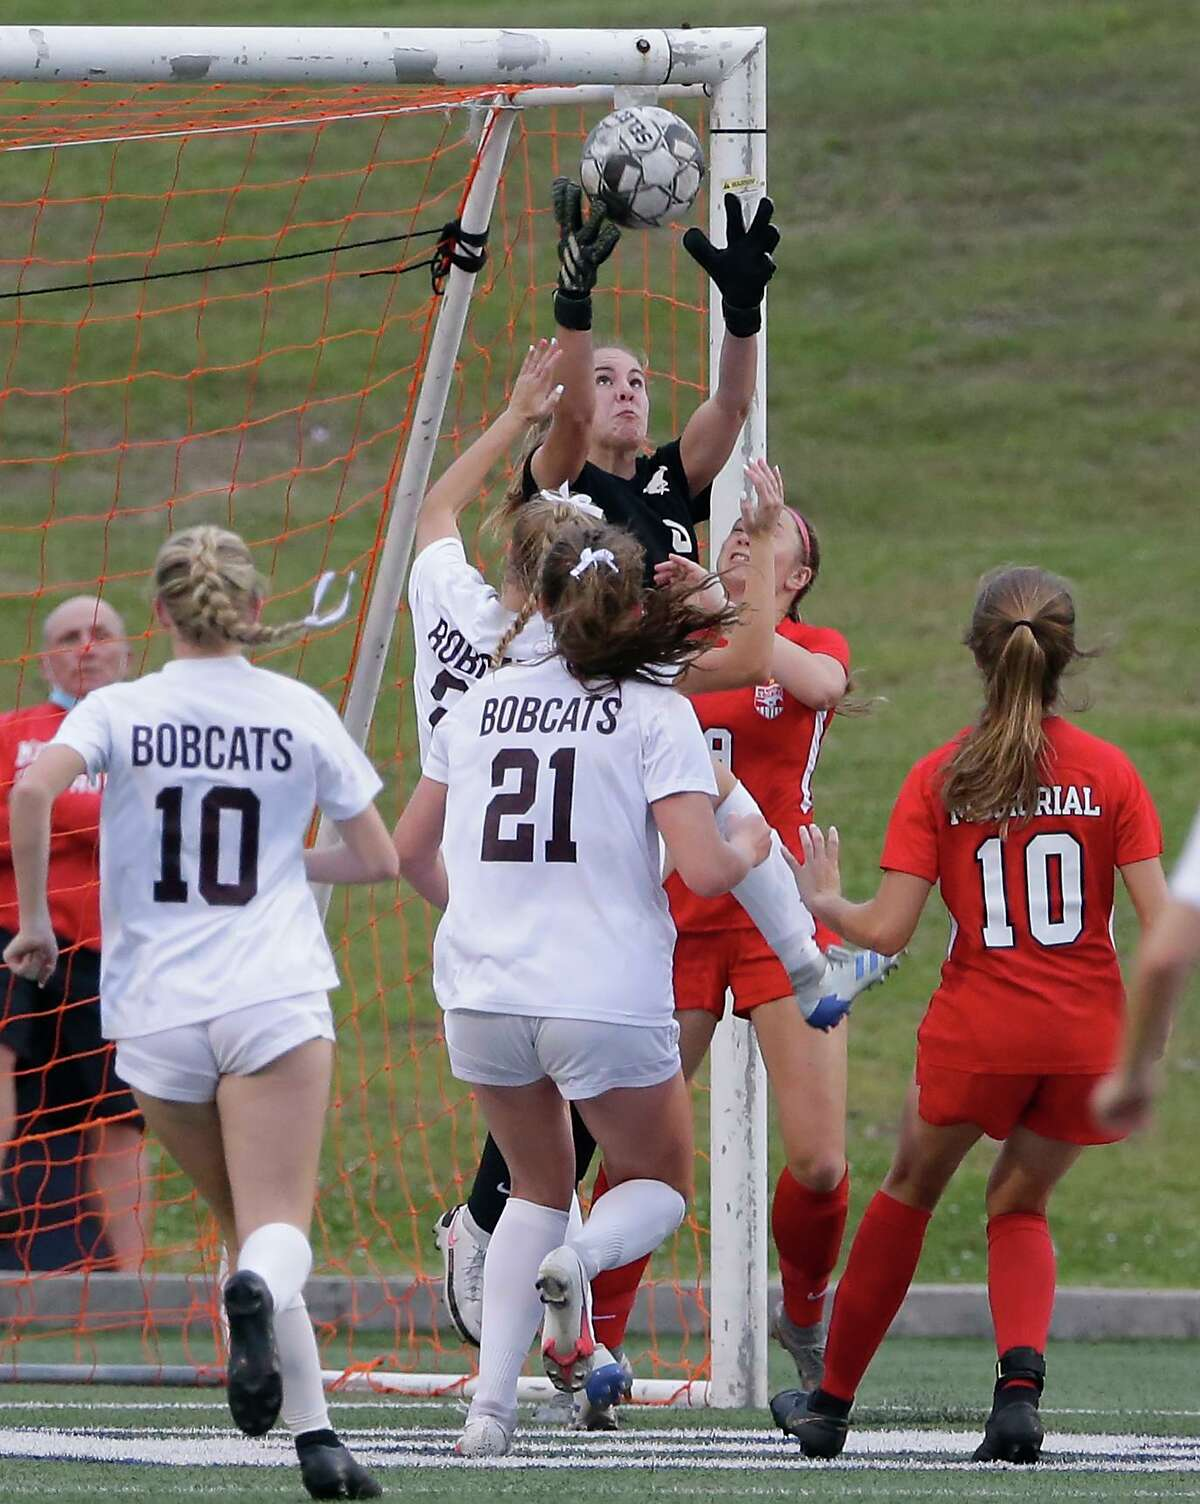 Memorial goalie Maddie Dukes jumps to catch a shot on goal during the first half of their Region 3 championship soccer game against Cy-Fair Friday, Apr. 9, 2021 at Tully Stadium in Houston, TX.